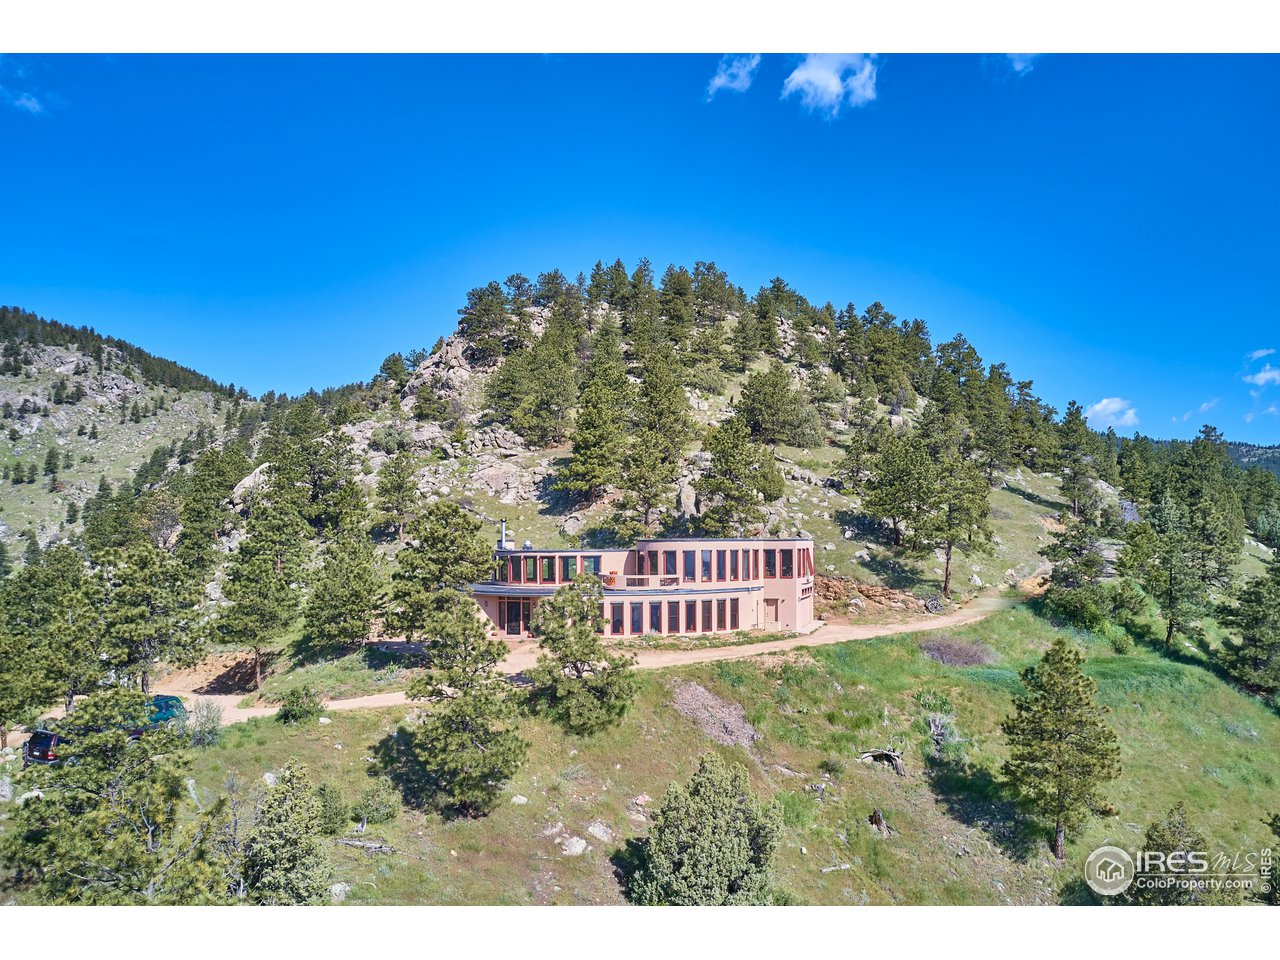 Featured Homes - Jimmy Keith Real Estate